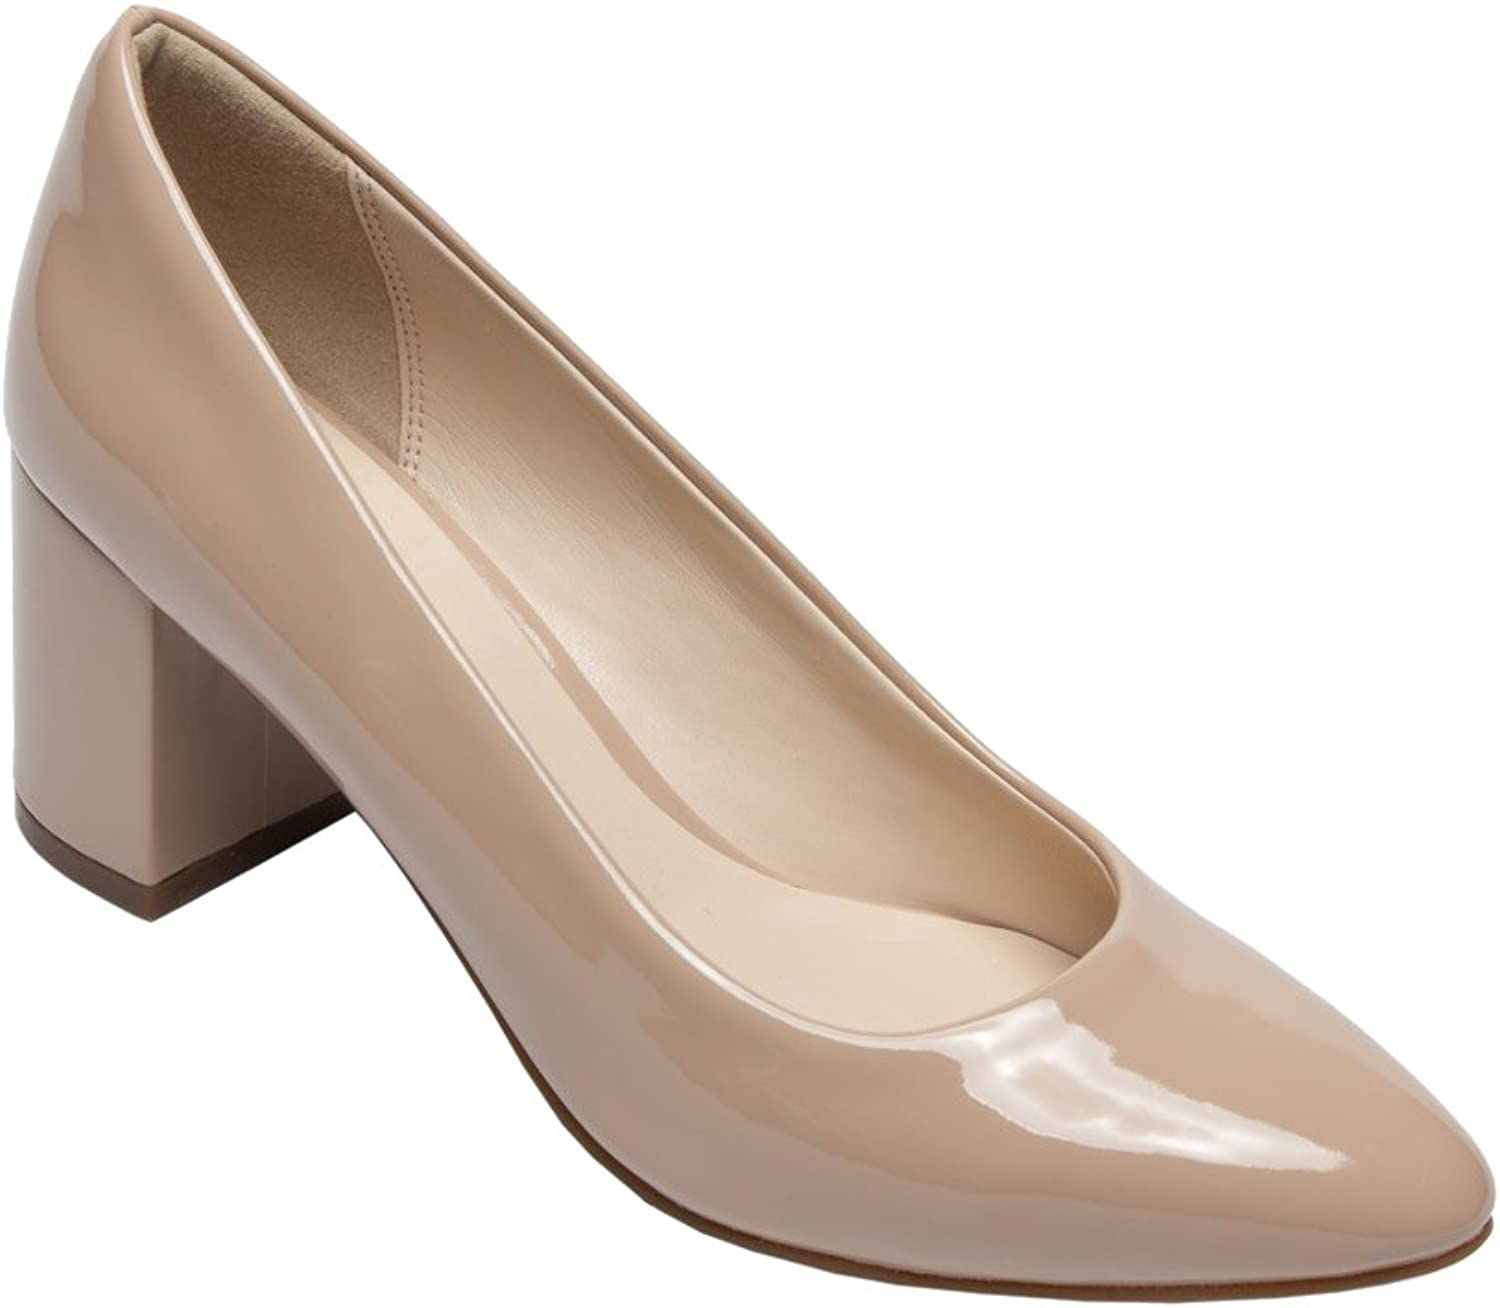 PIC PAY Fairy - Women's Contemporary Patent Pumps - Almond Toe Leather Comfortable Block High Heel shoes